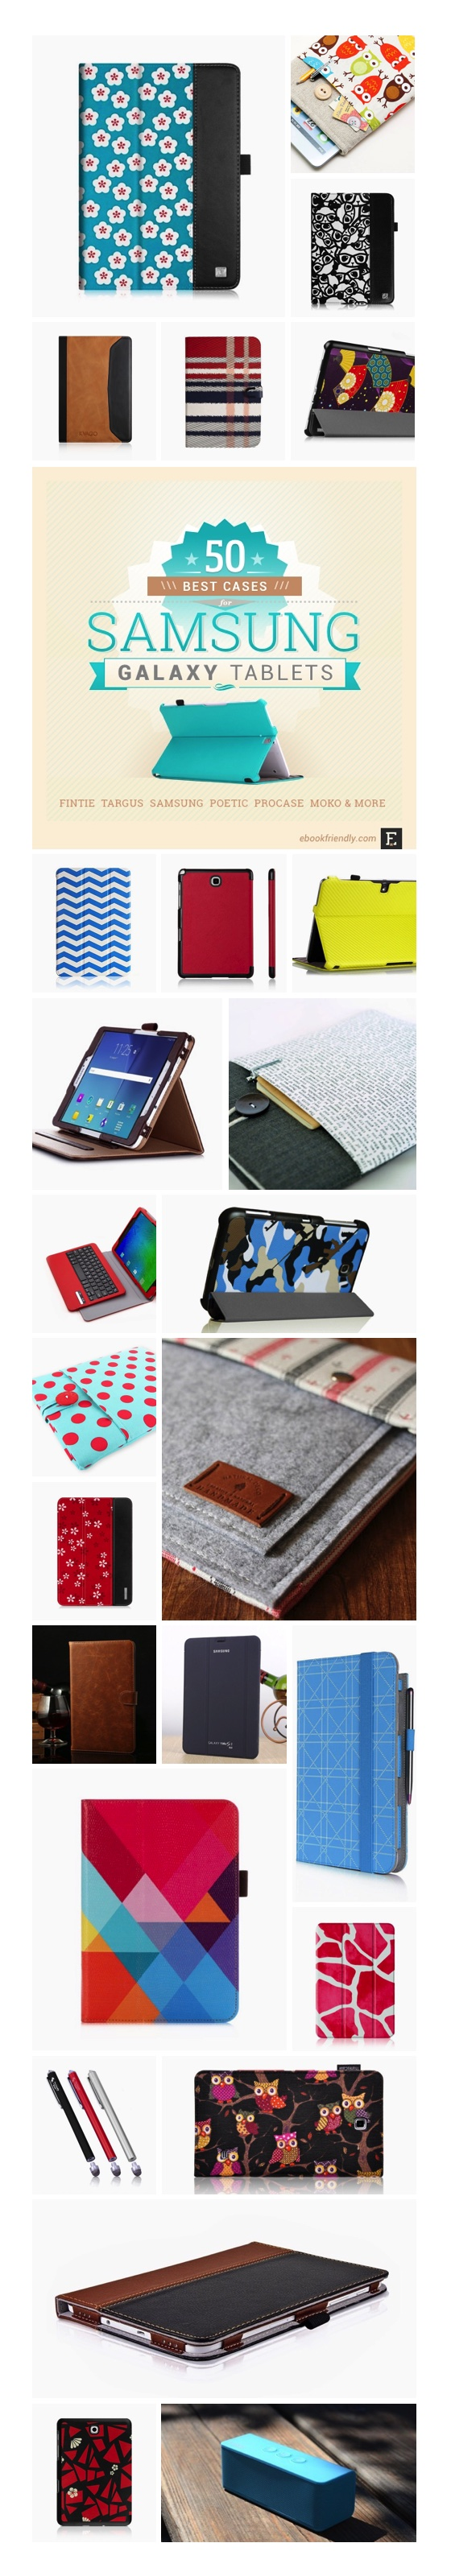 Best Samsung Galaxy Tab cases accessories - infographic